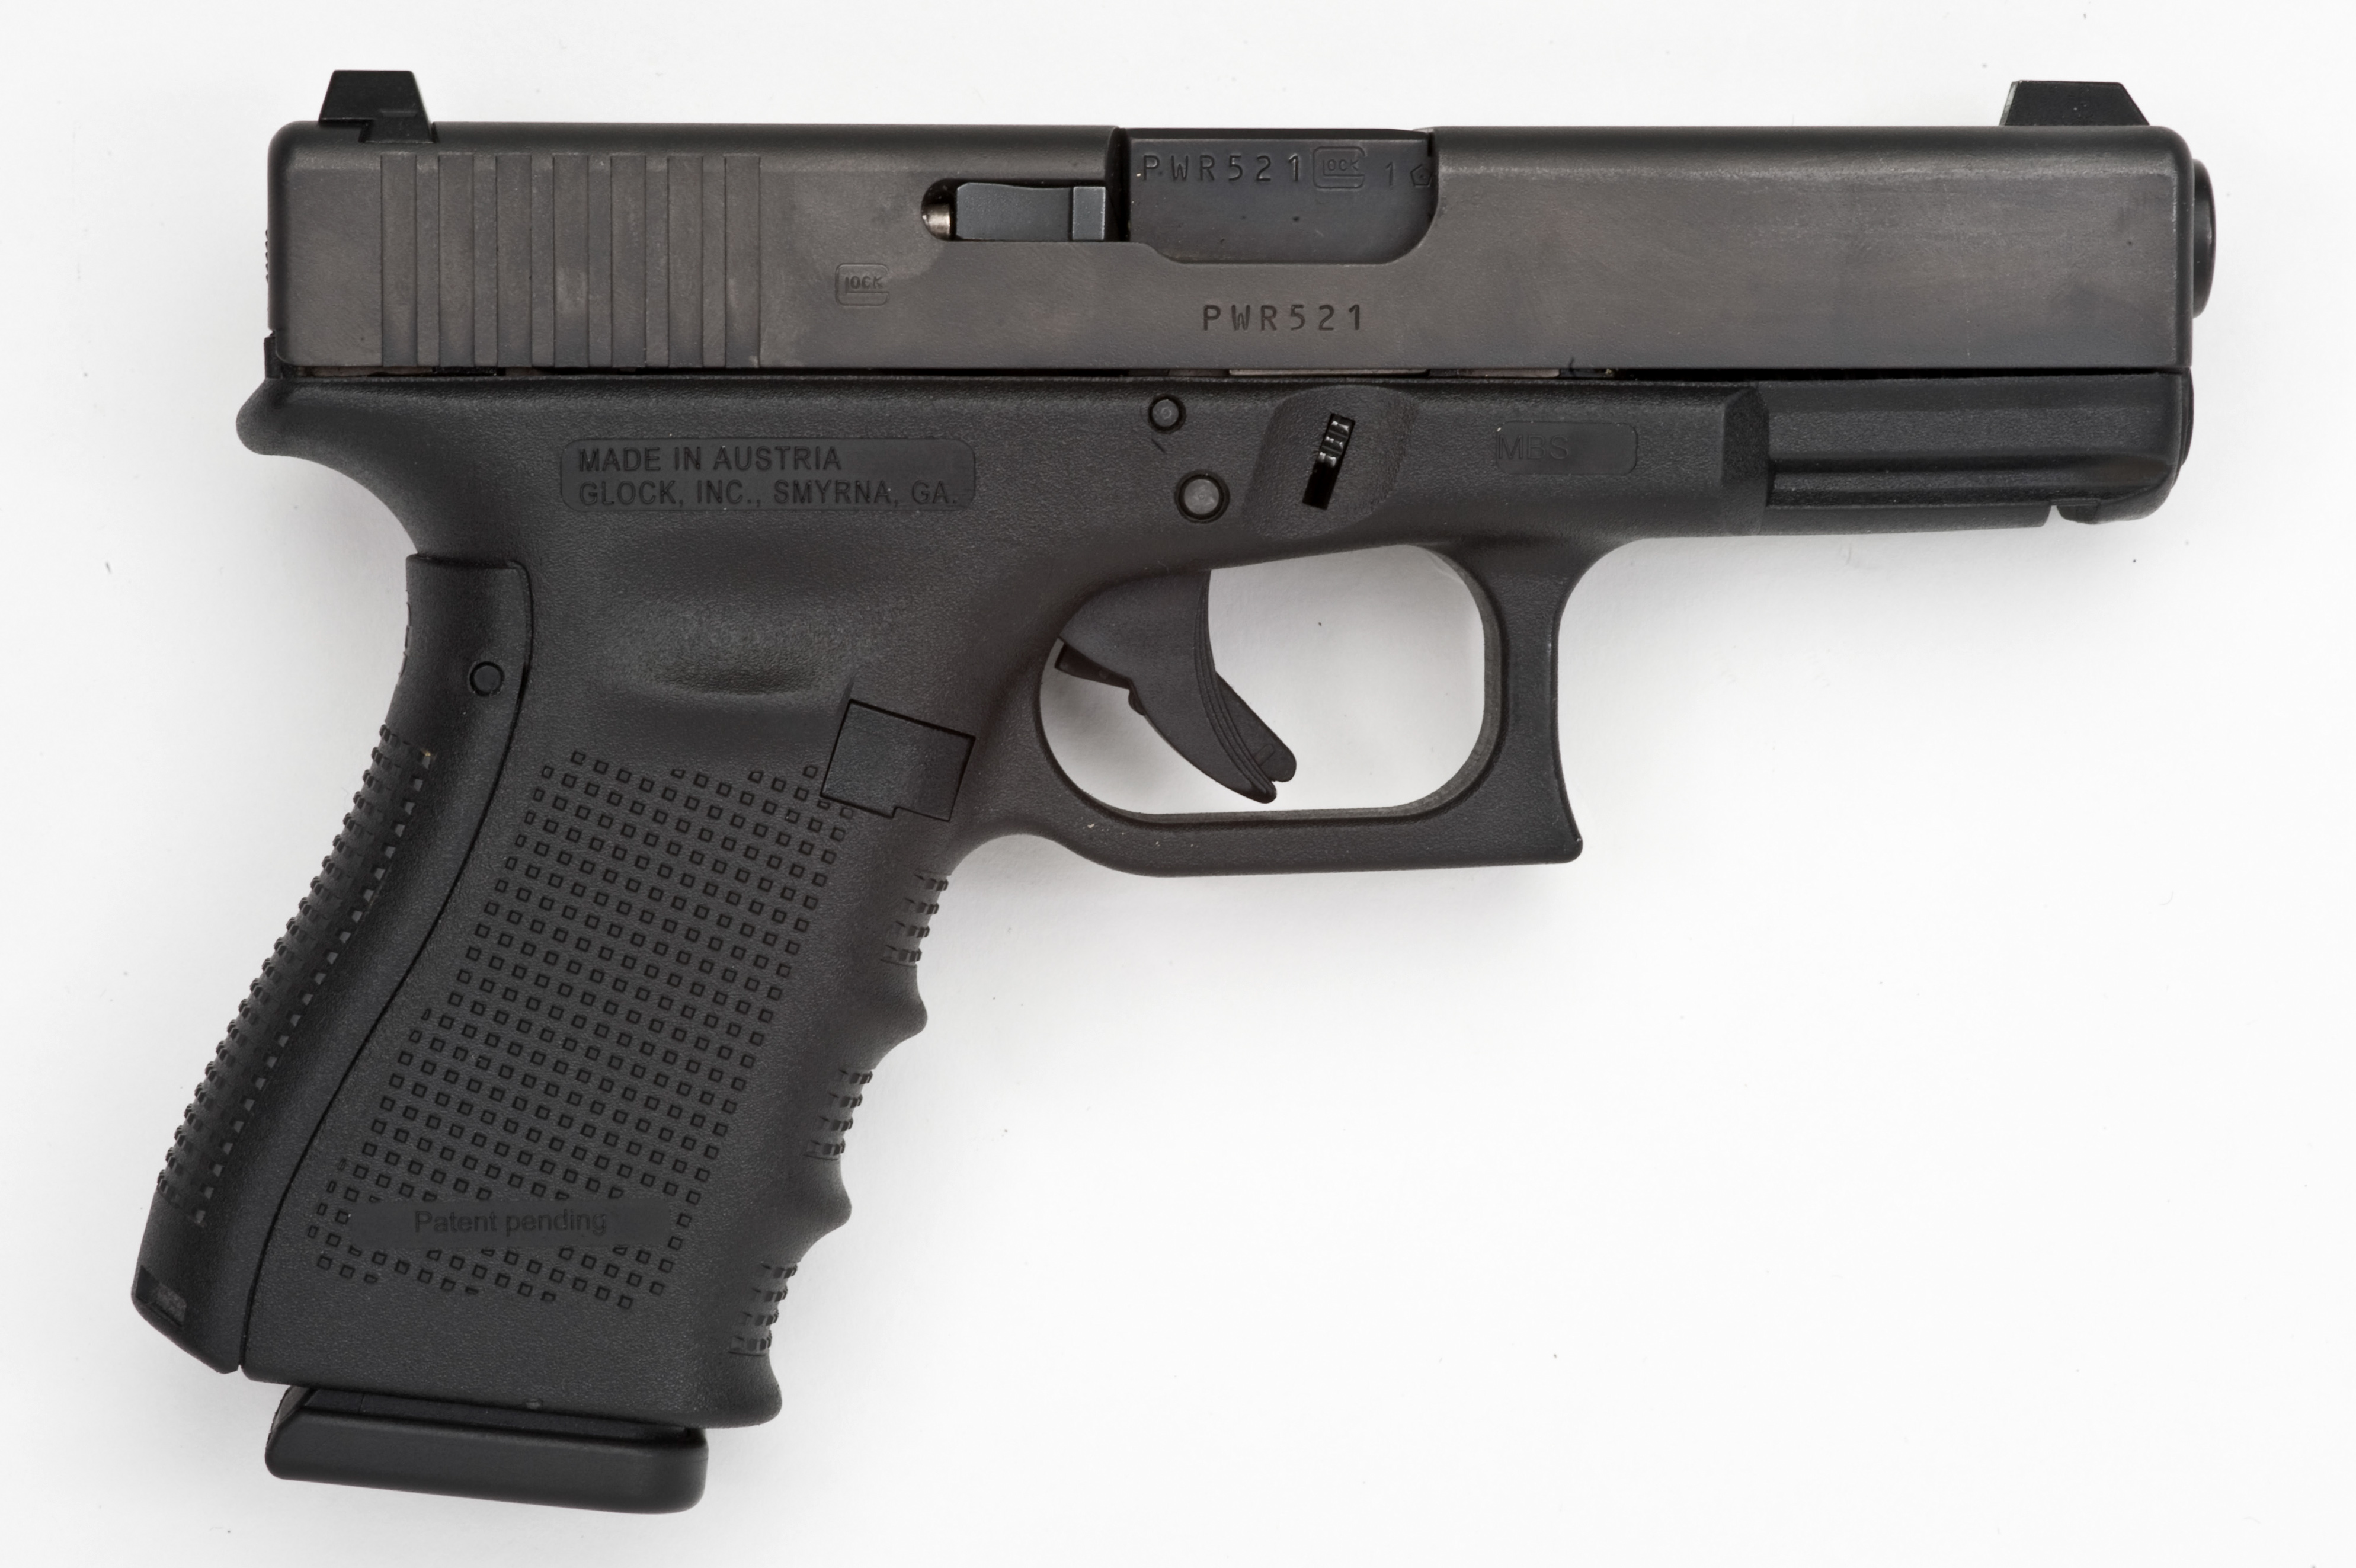 glock-19-pistols-approved-for-marsoc-operators